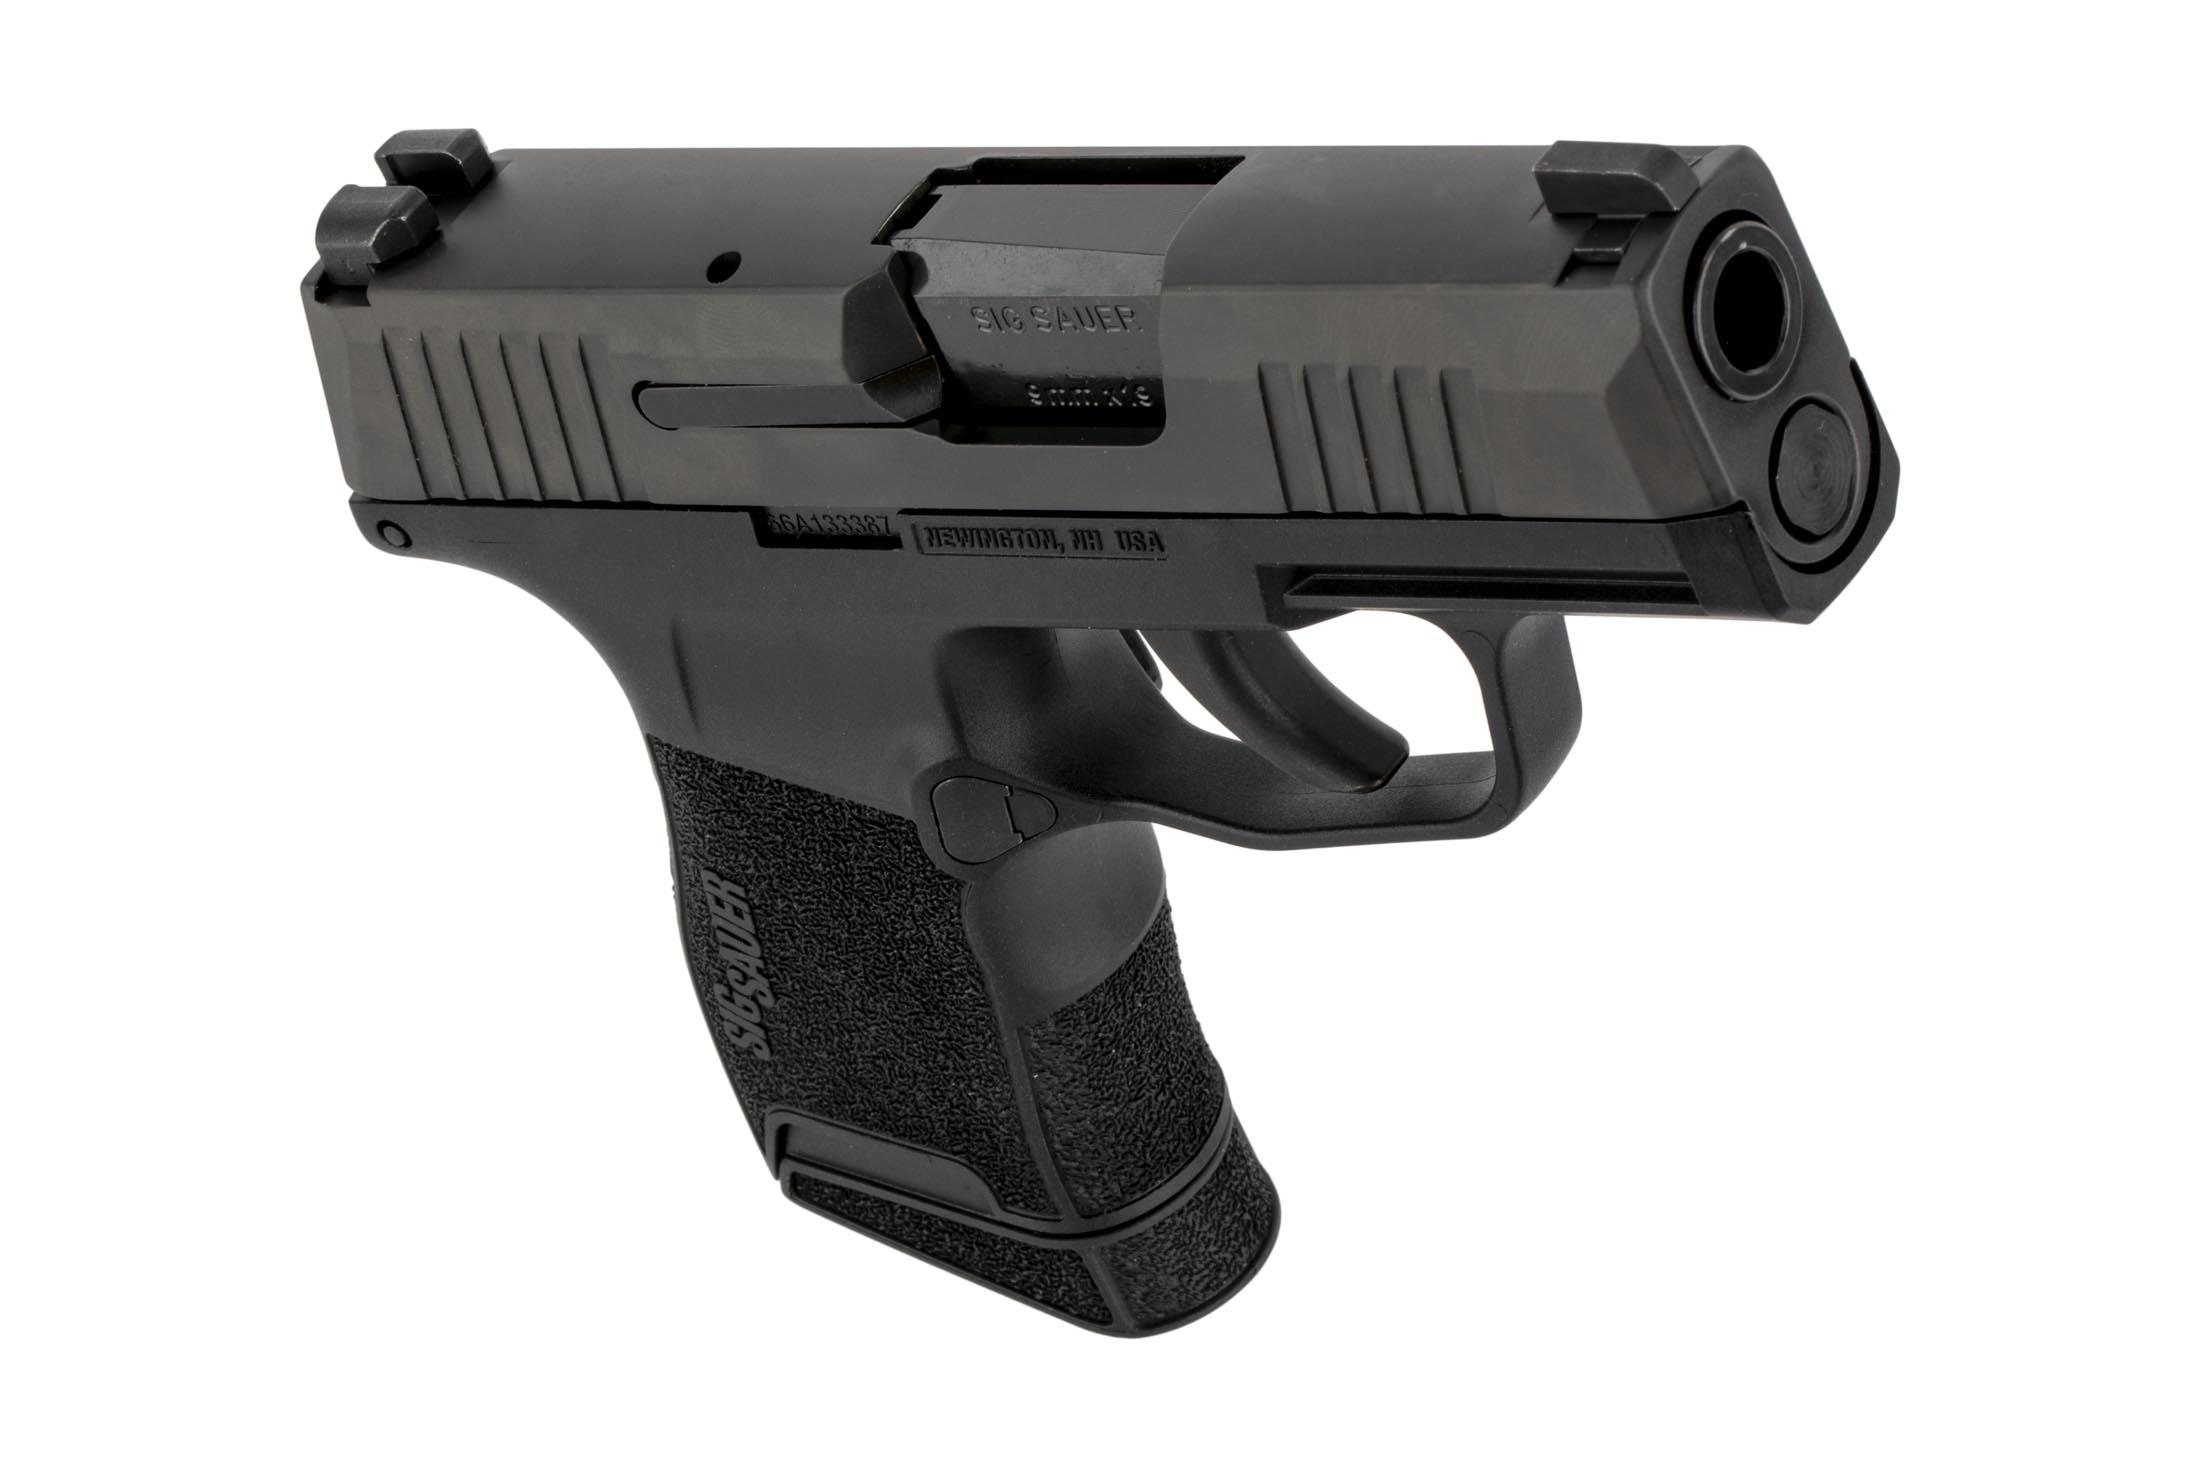 P365 compact handgun from SIG Sauer with reversible magazine release and accessory rail